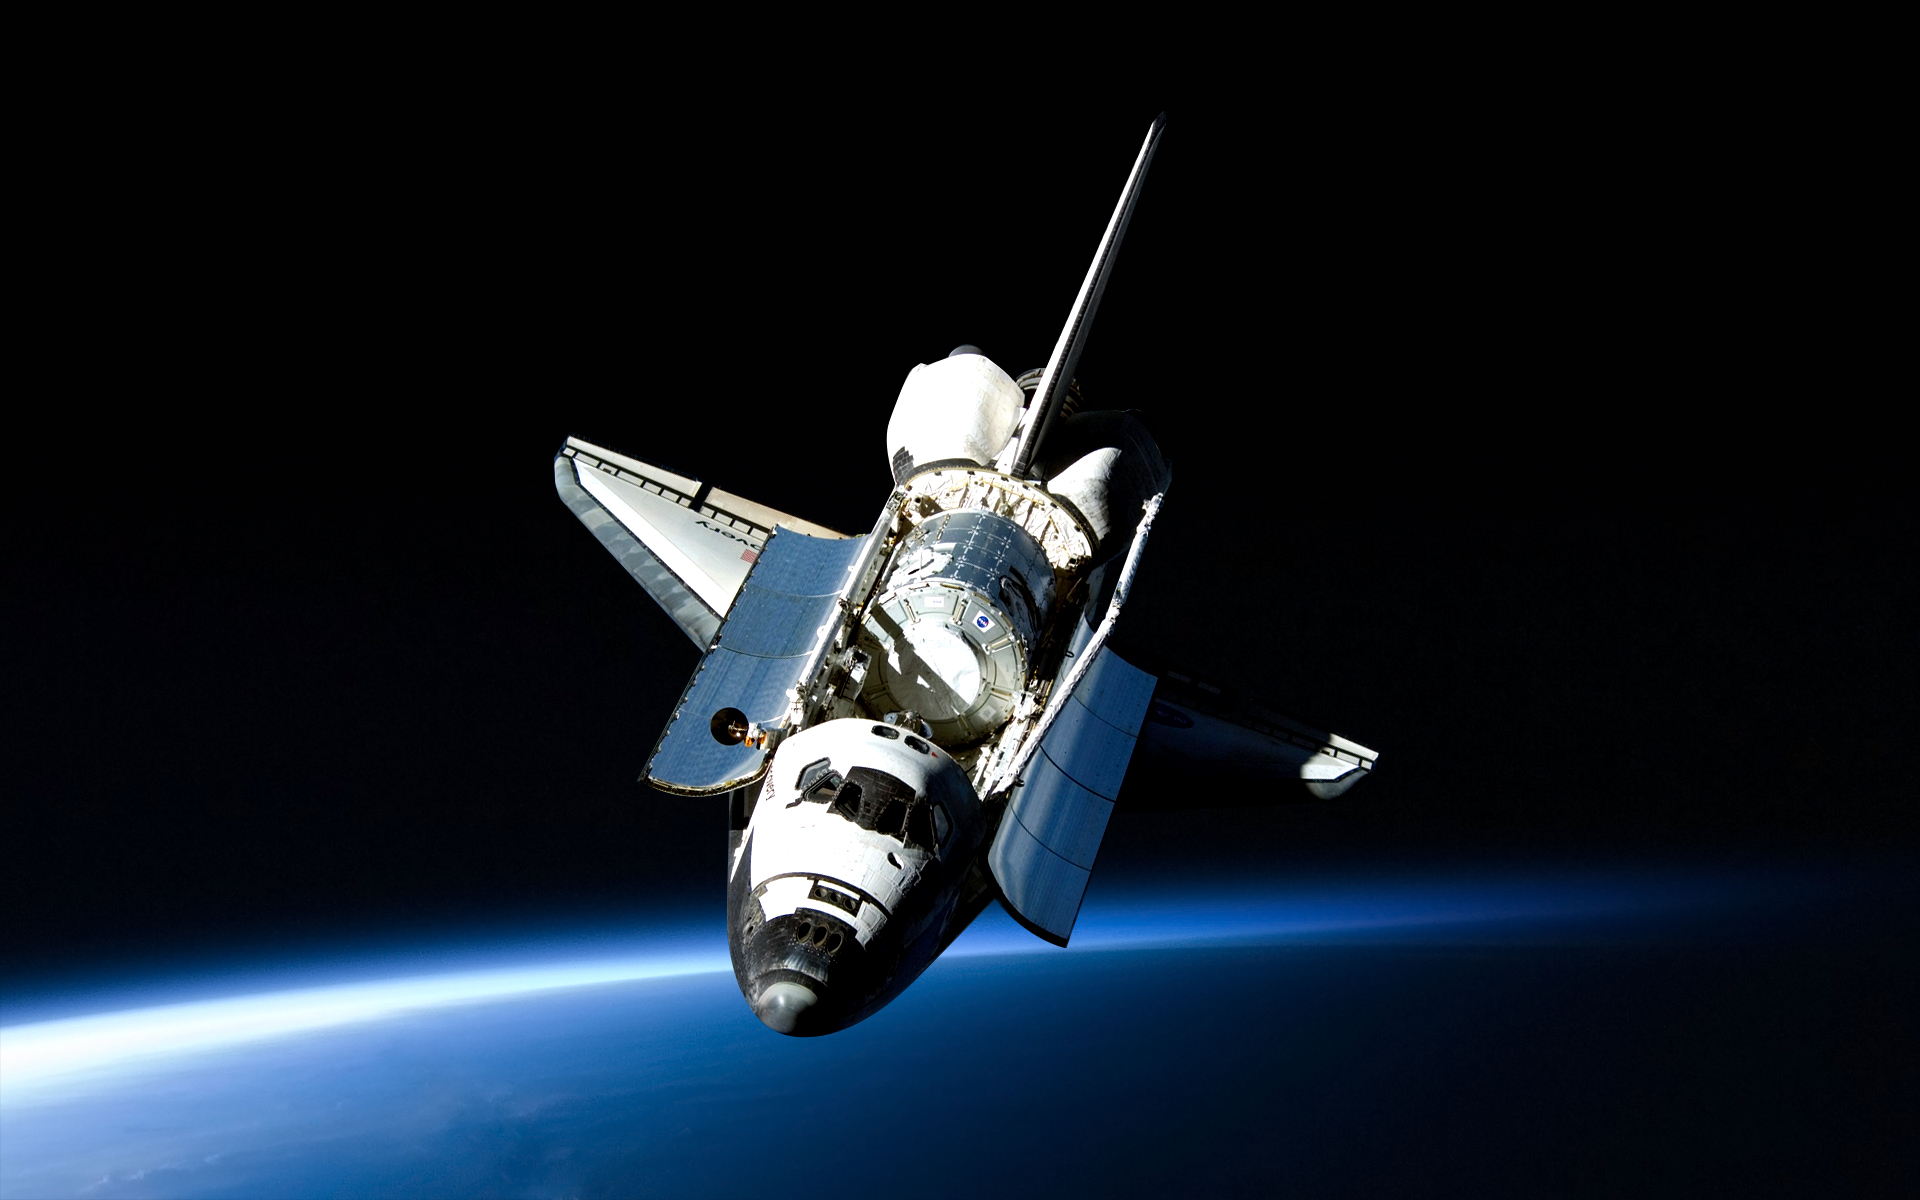 Space Shuttle Endeavour Wallpapers and Background Images   stmednet 1920x1200